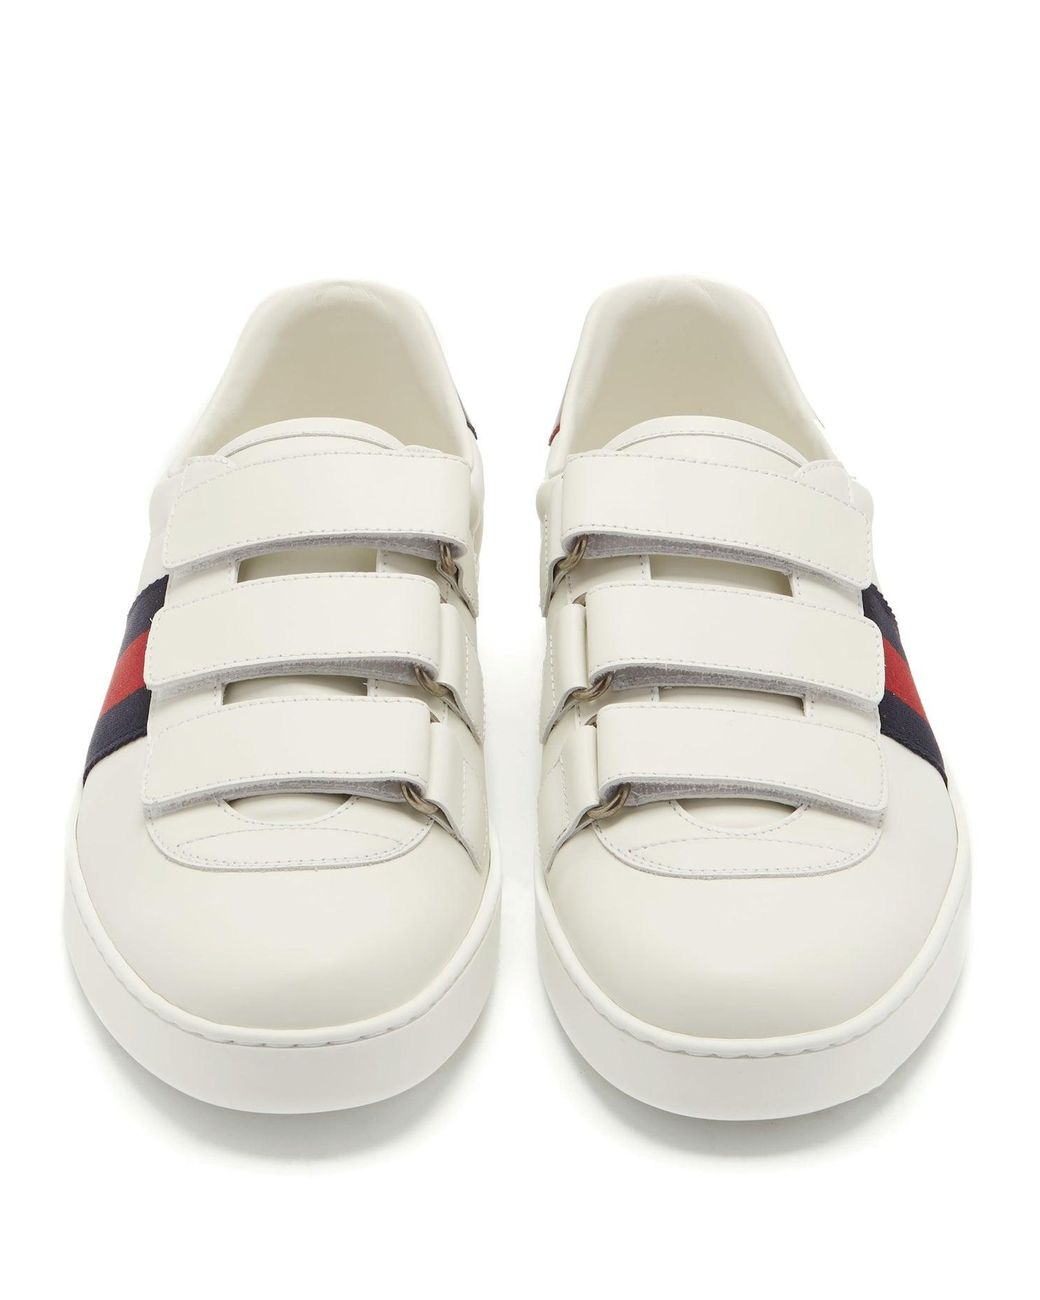 Aceweb gucci new ace web-stripe low-top leather trainers in white